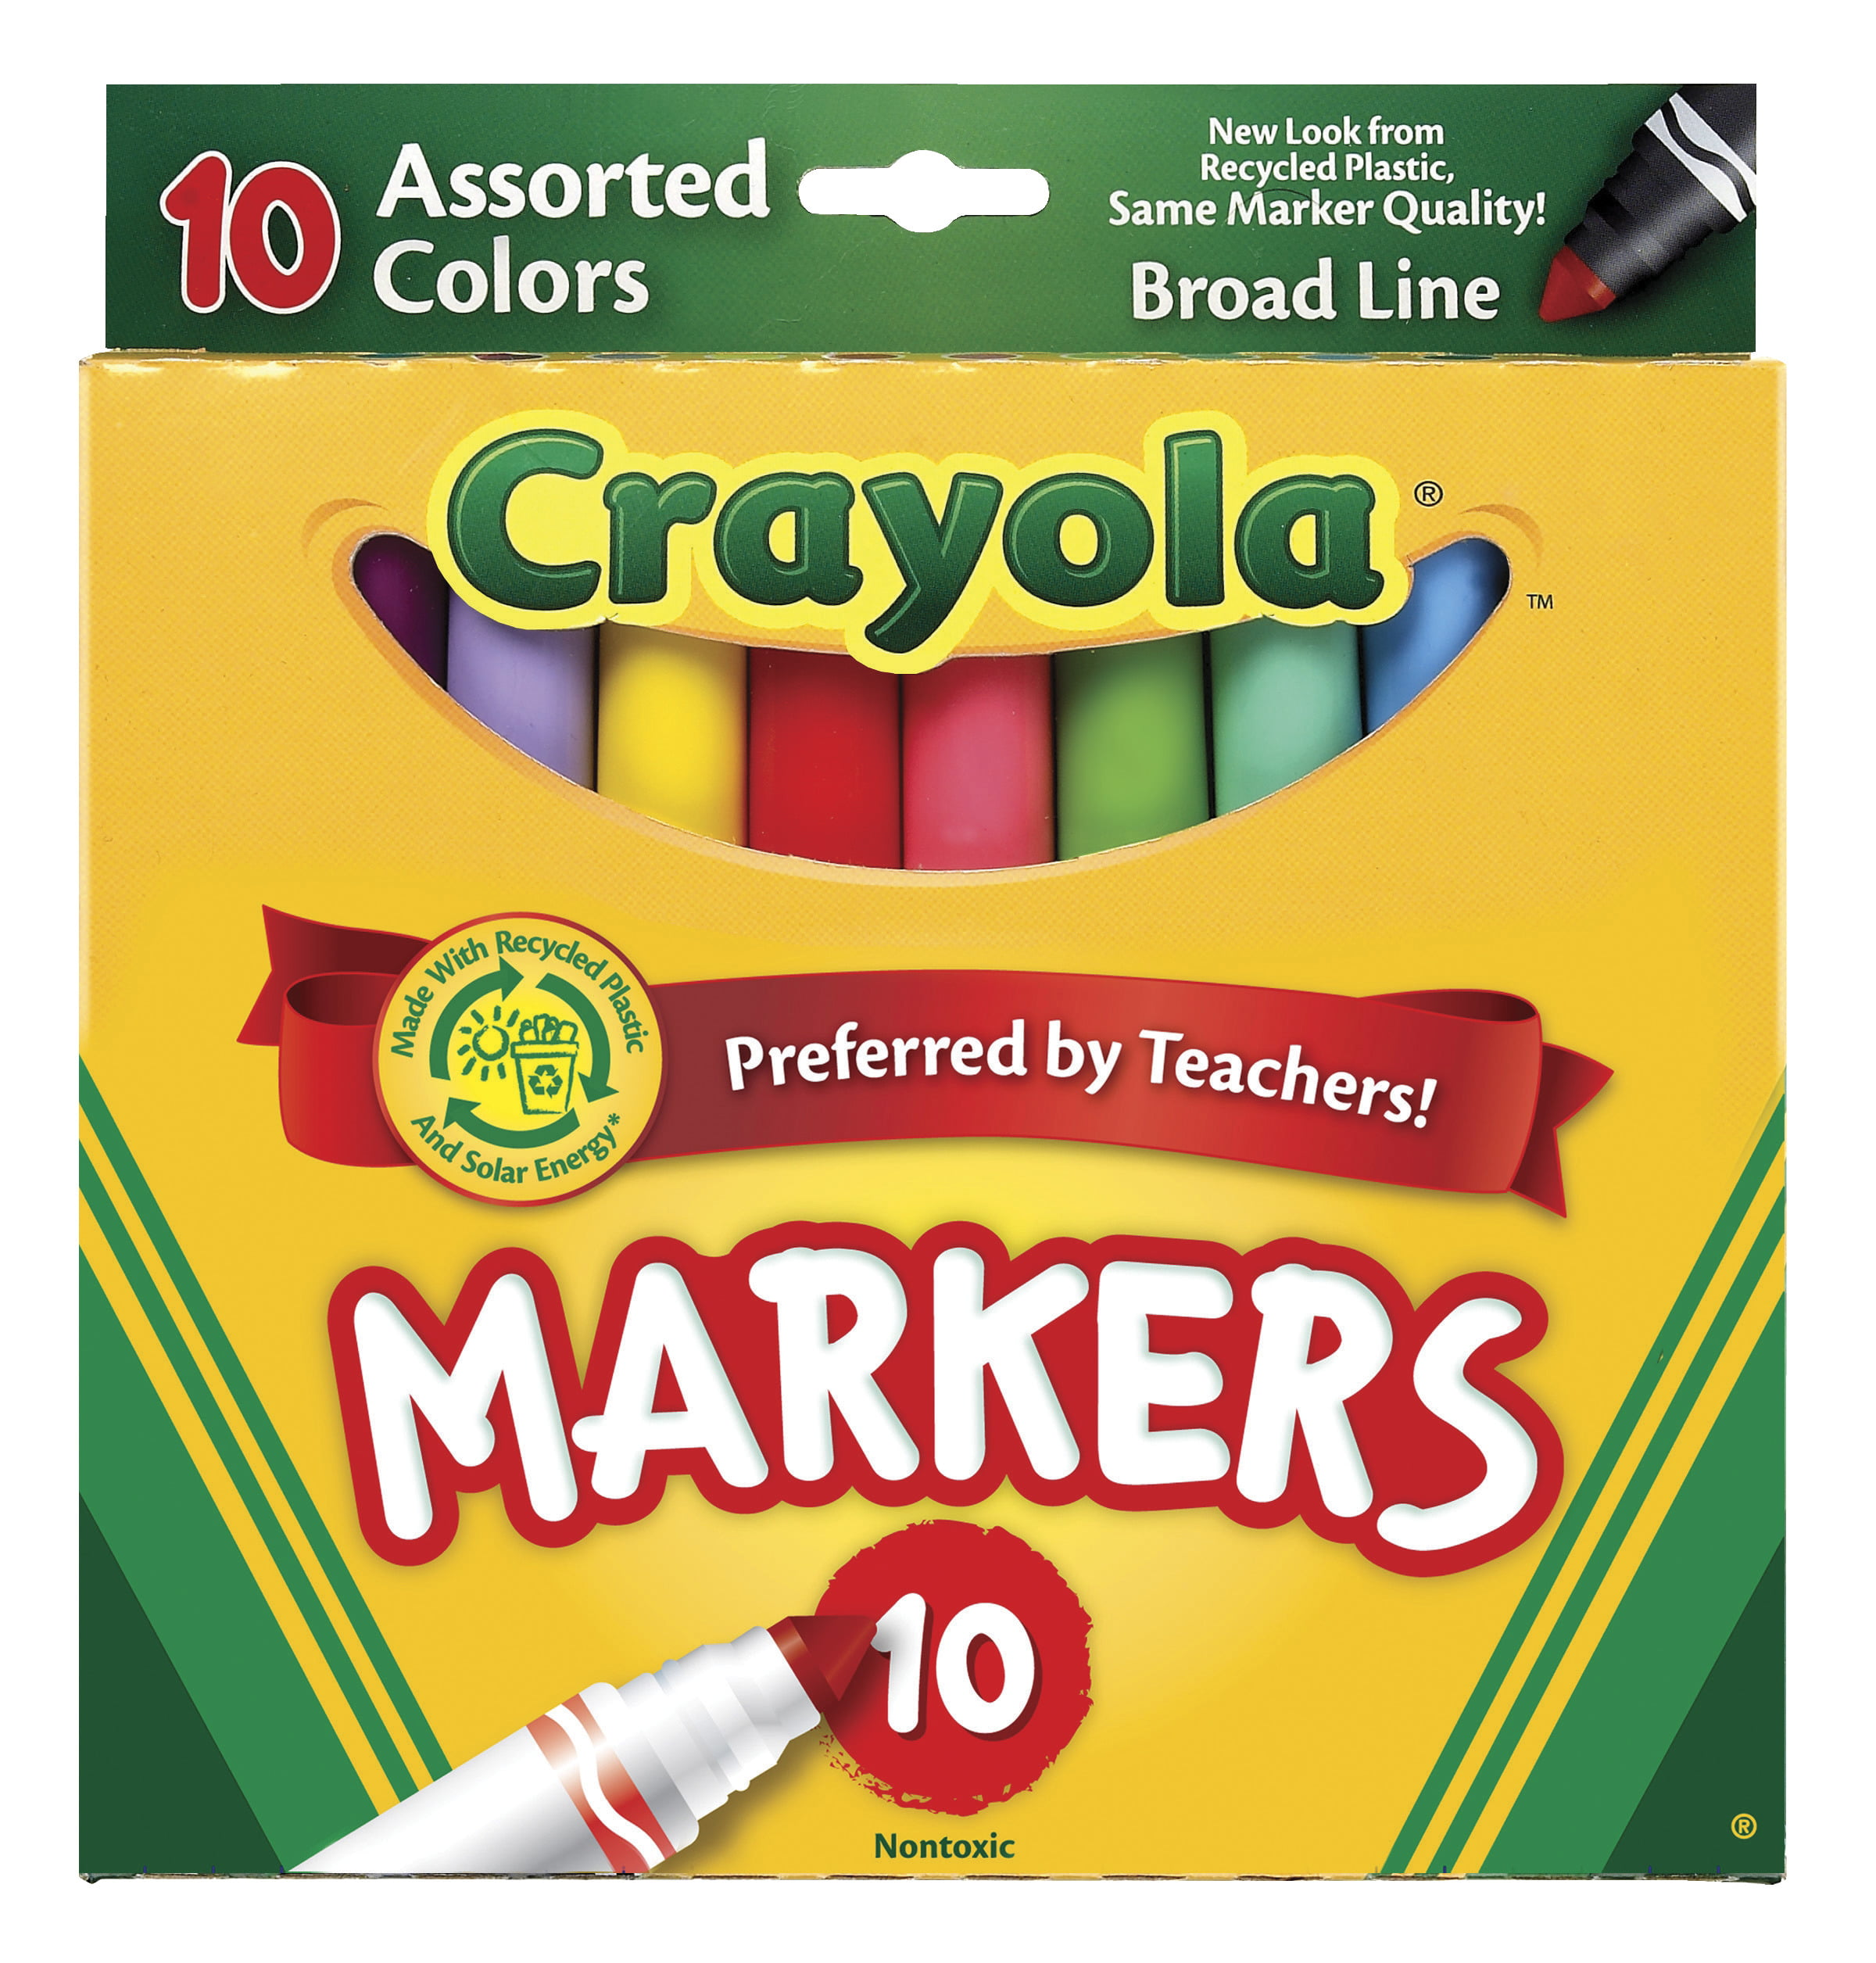 Crayola Original Broad Line Markers, Assorted Bright and Bold Colors, Set of 10 by Crayola LLC